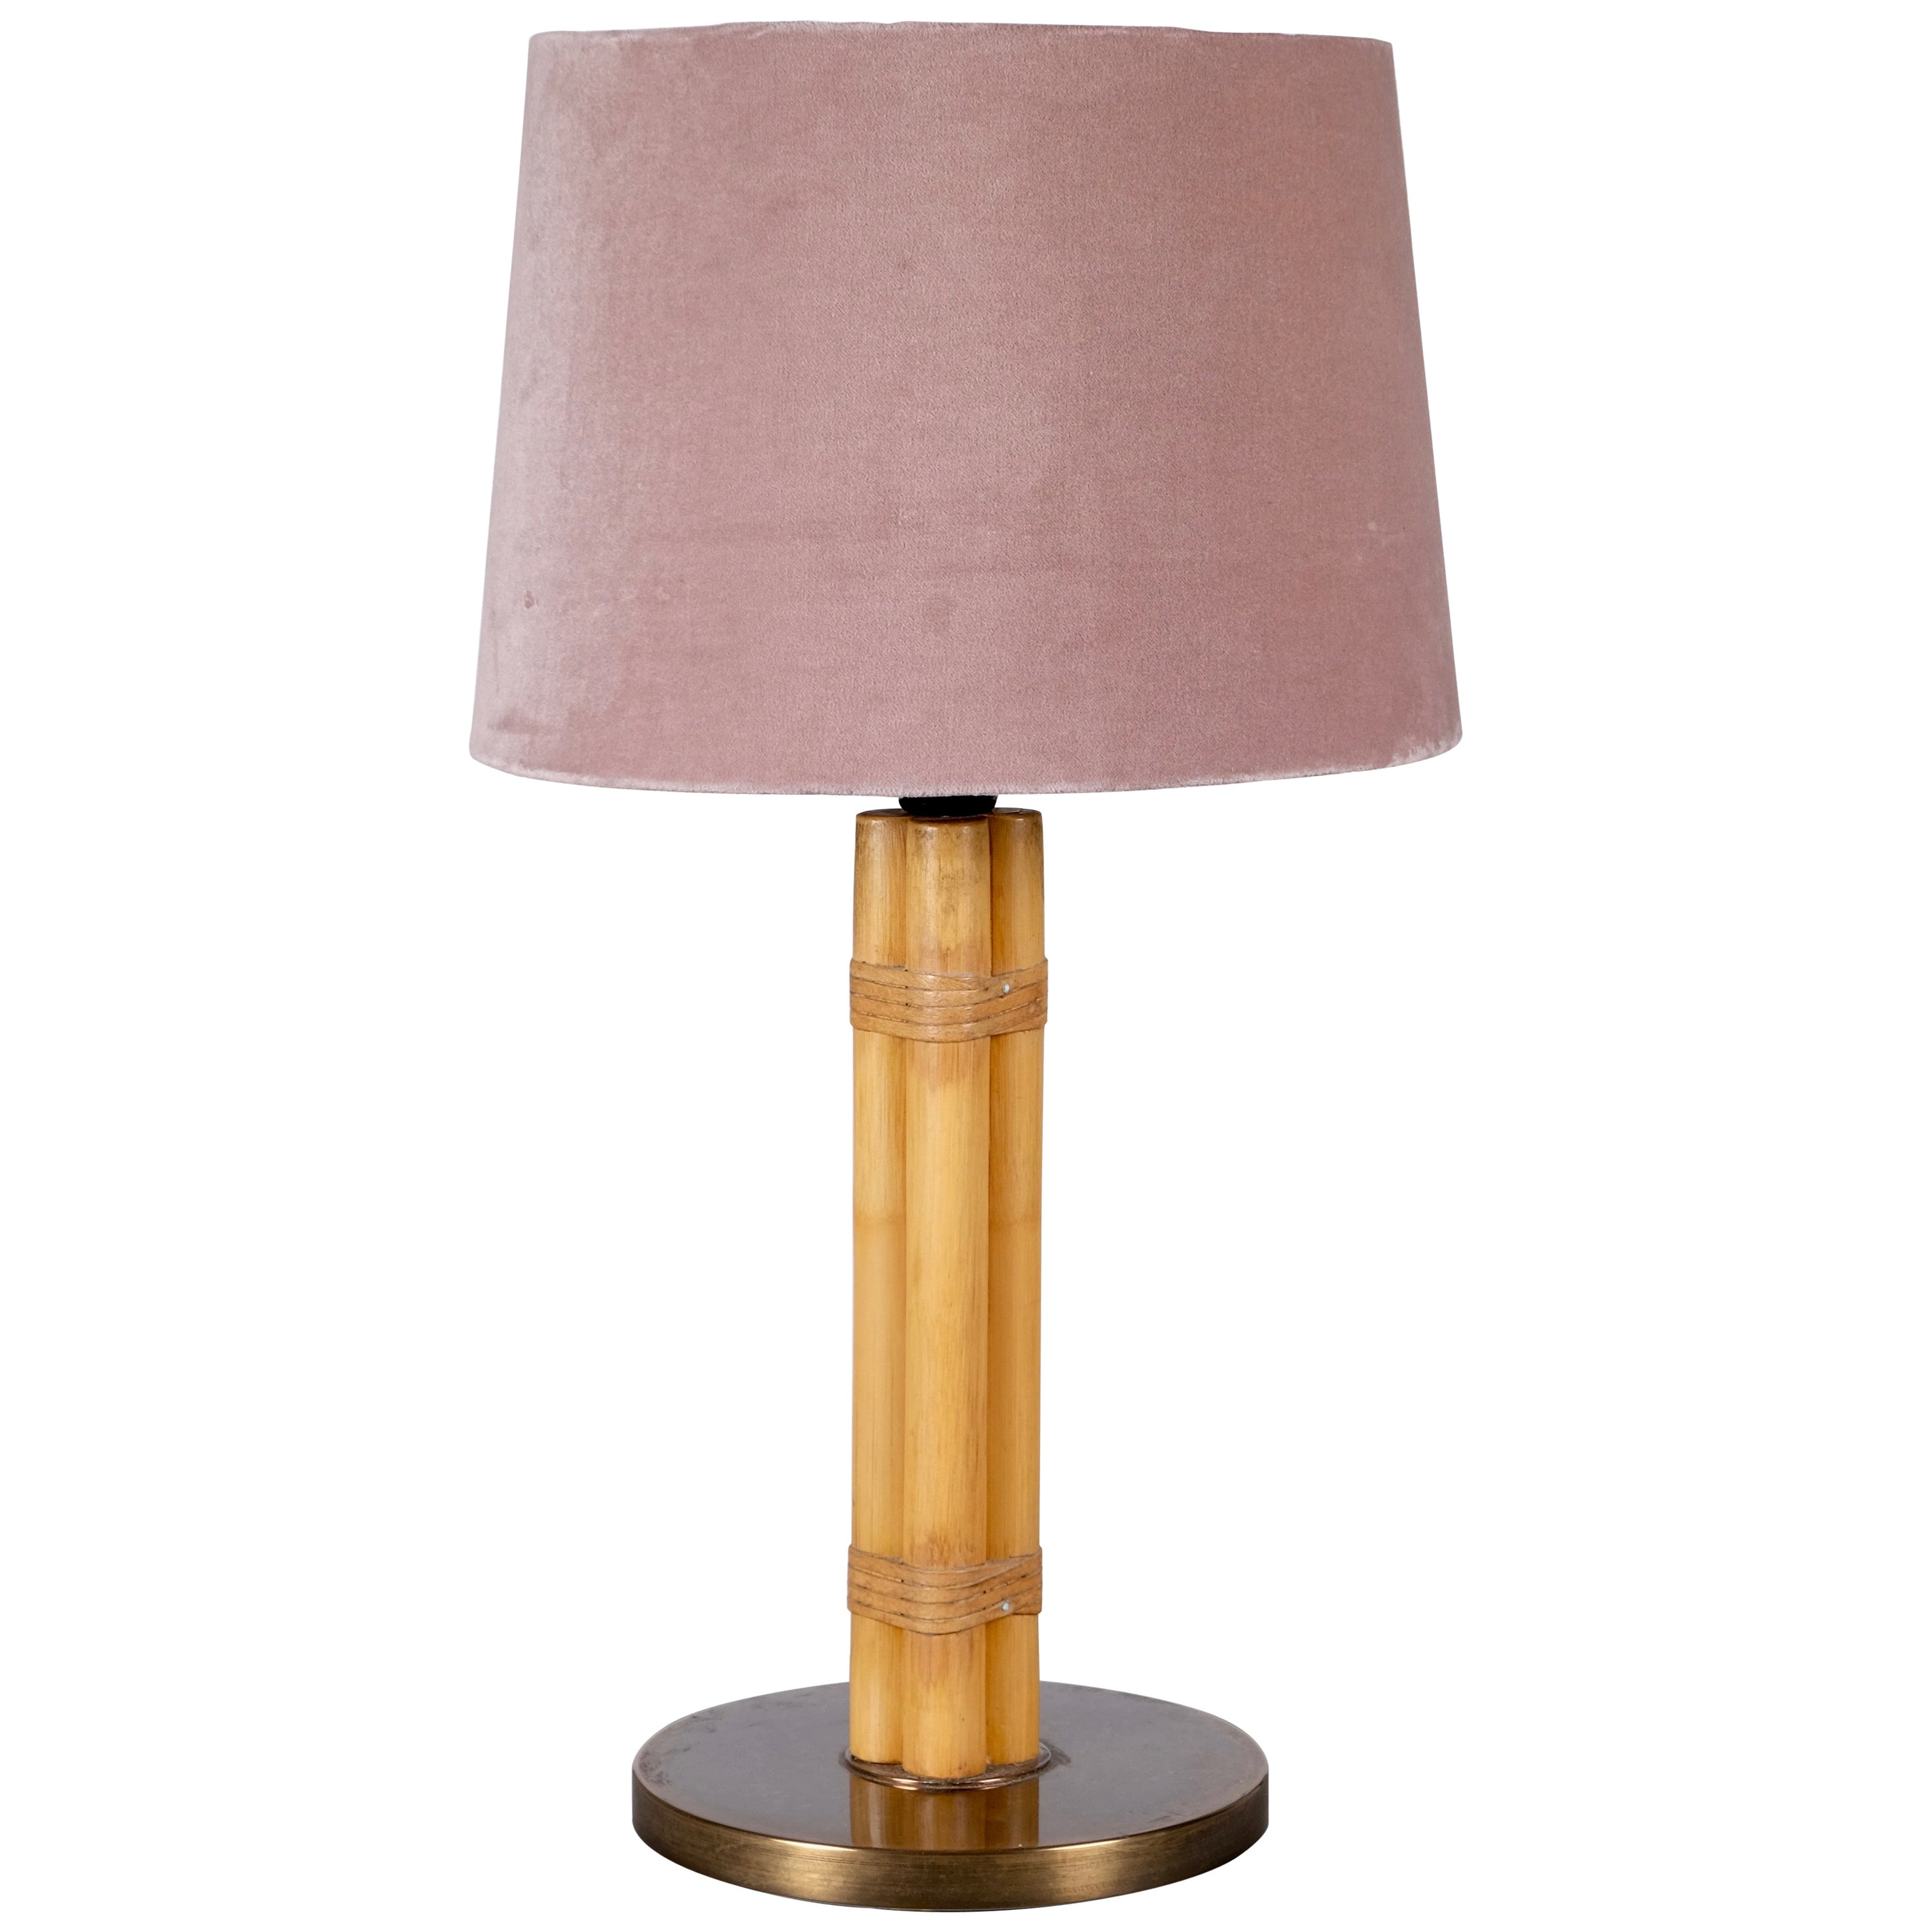 Swedish Brass and Bamboo Table Lamp by Bergboms, 1970s